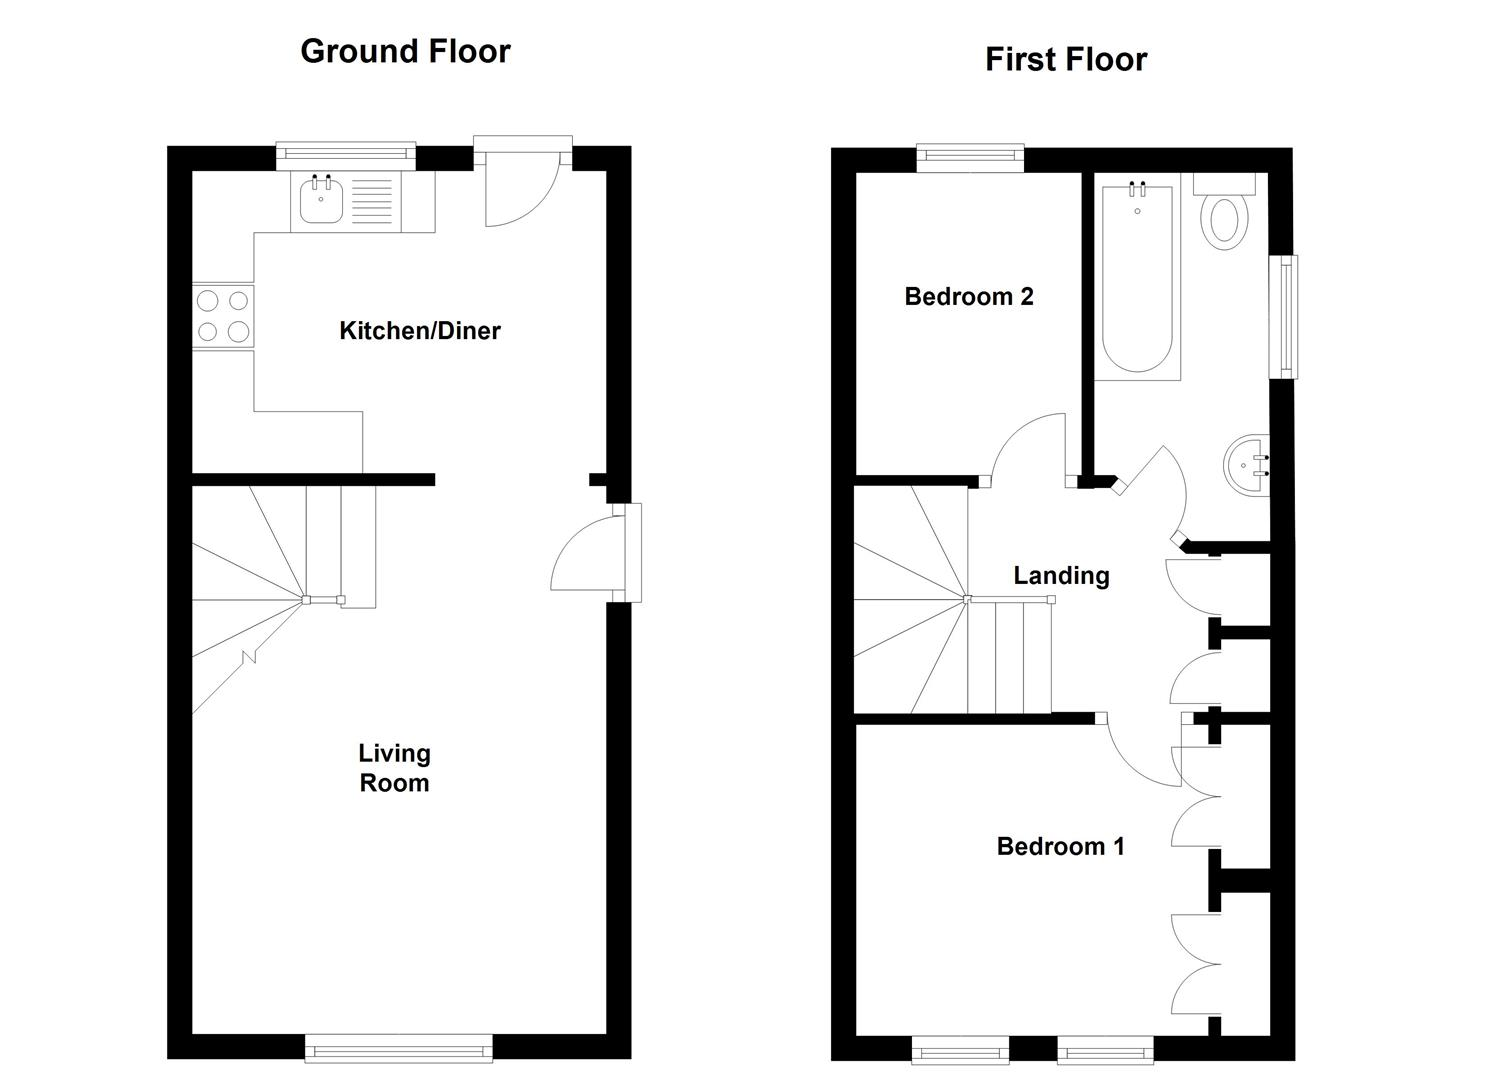 42769725 besides Thesail additionally Floorplans Estate Agents together with Software For Estate Agents together with 219198706838210618. on 2d floor plans for estate agents